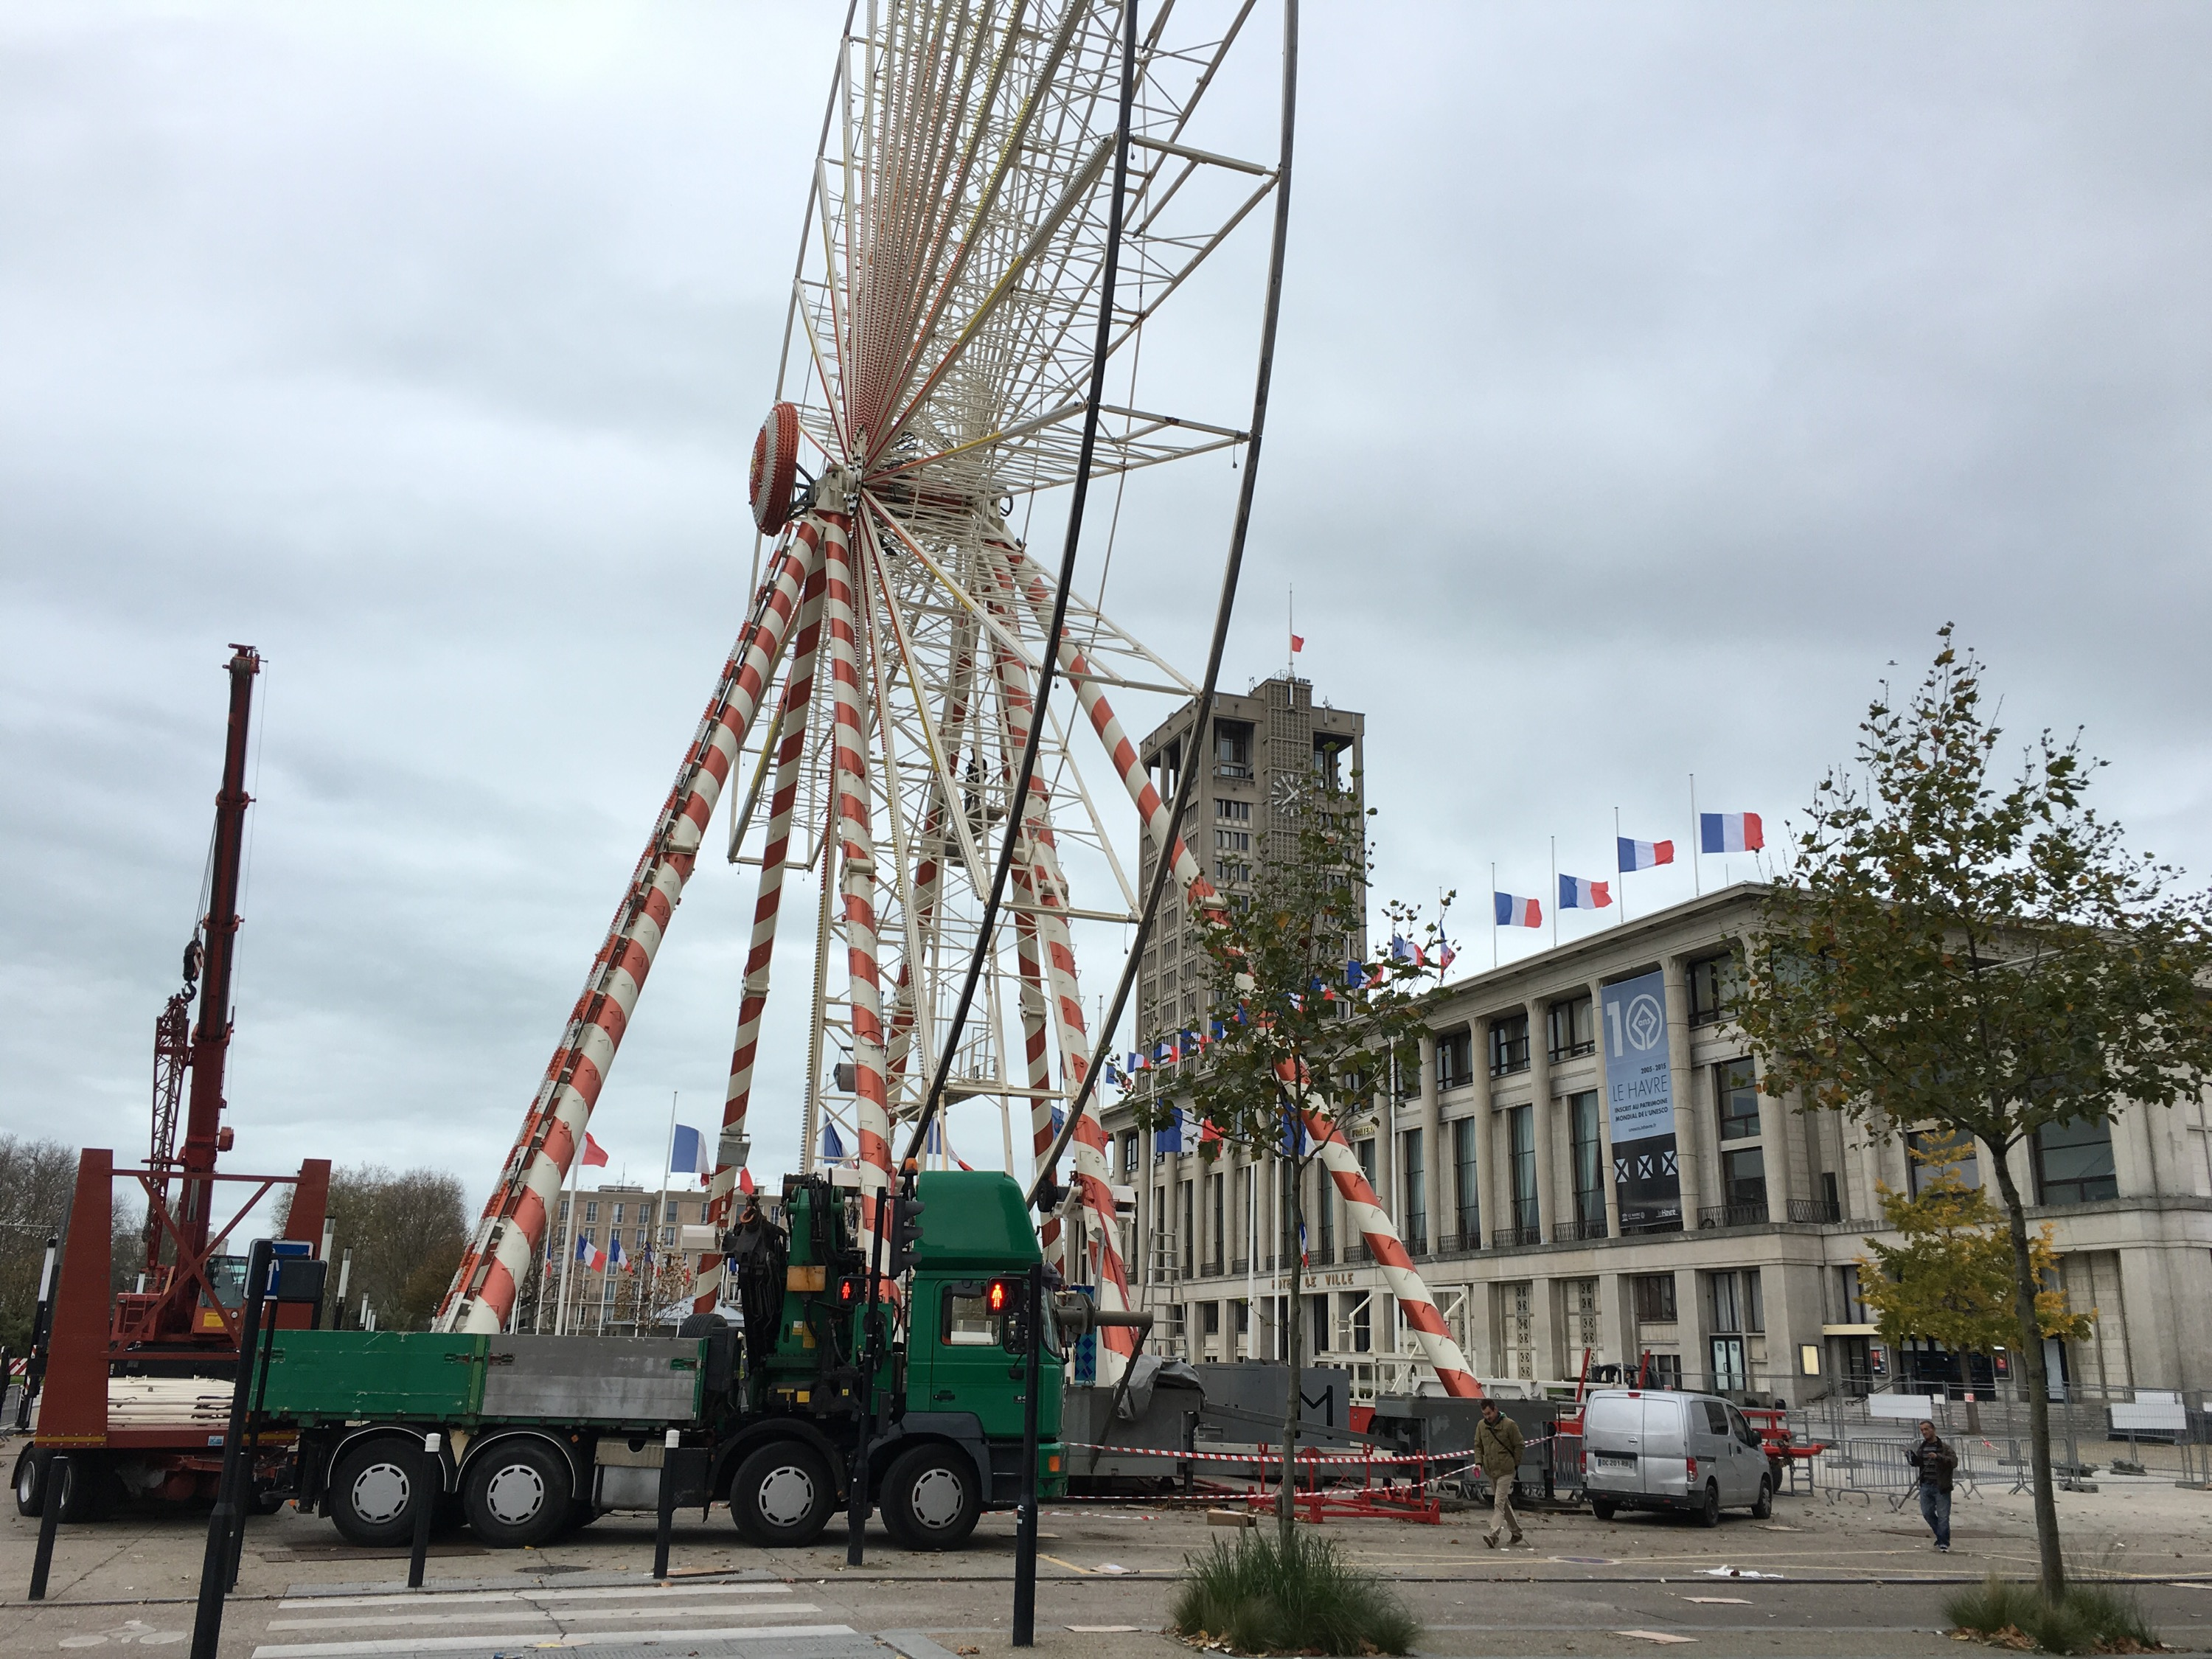 The Christmas Ferris Wheel